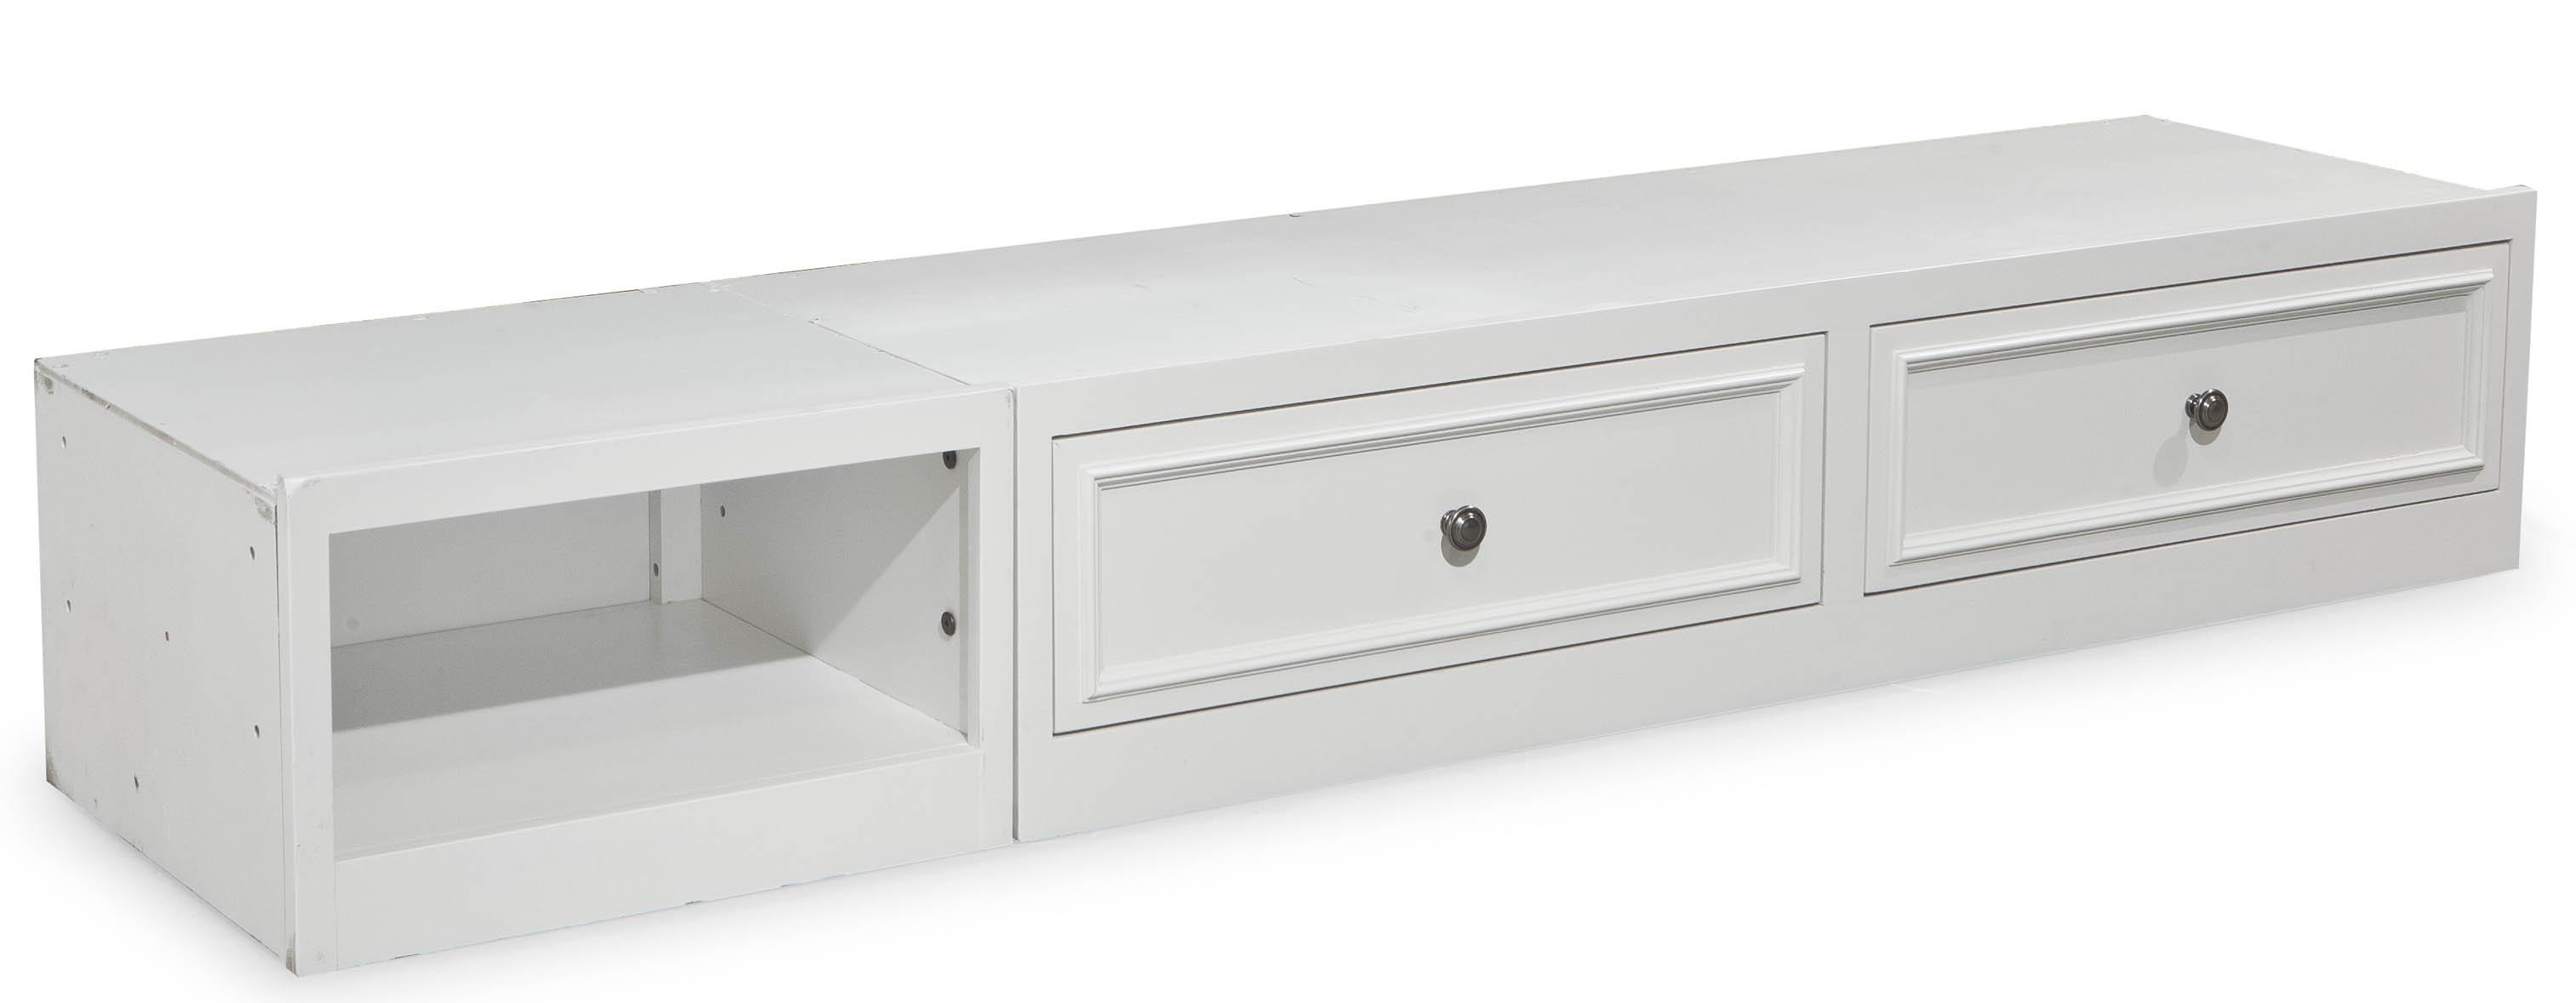 under bed storage legacy classic kids madison underbed storage unit - item number: 2830-9300 WTMPJJH